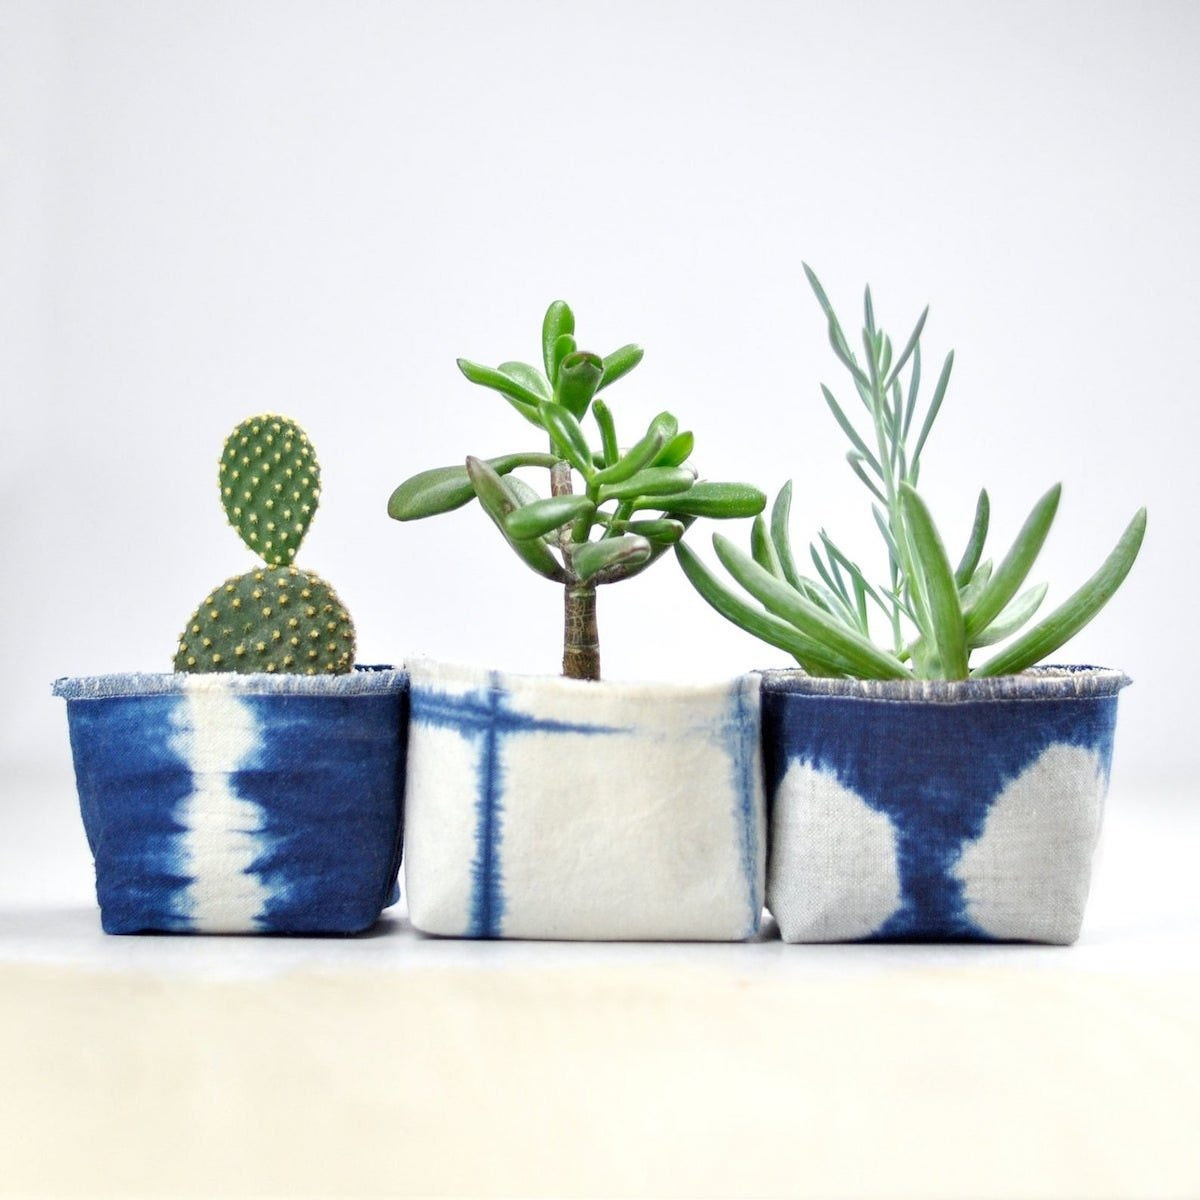 Tie-dyed fabric pots from Etsy